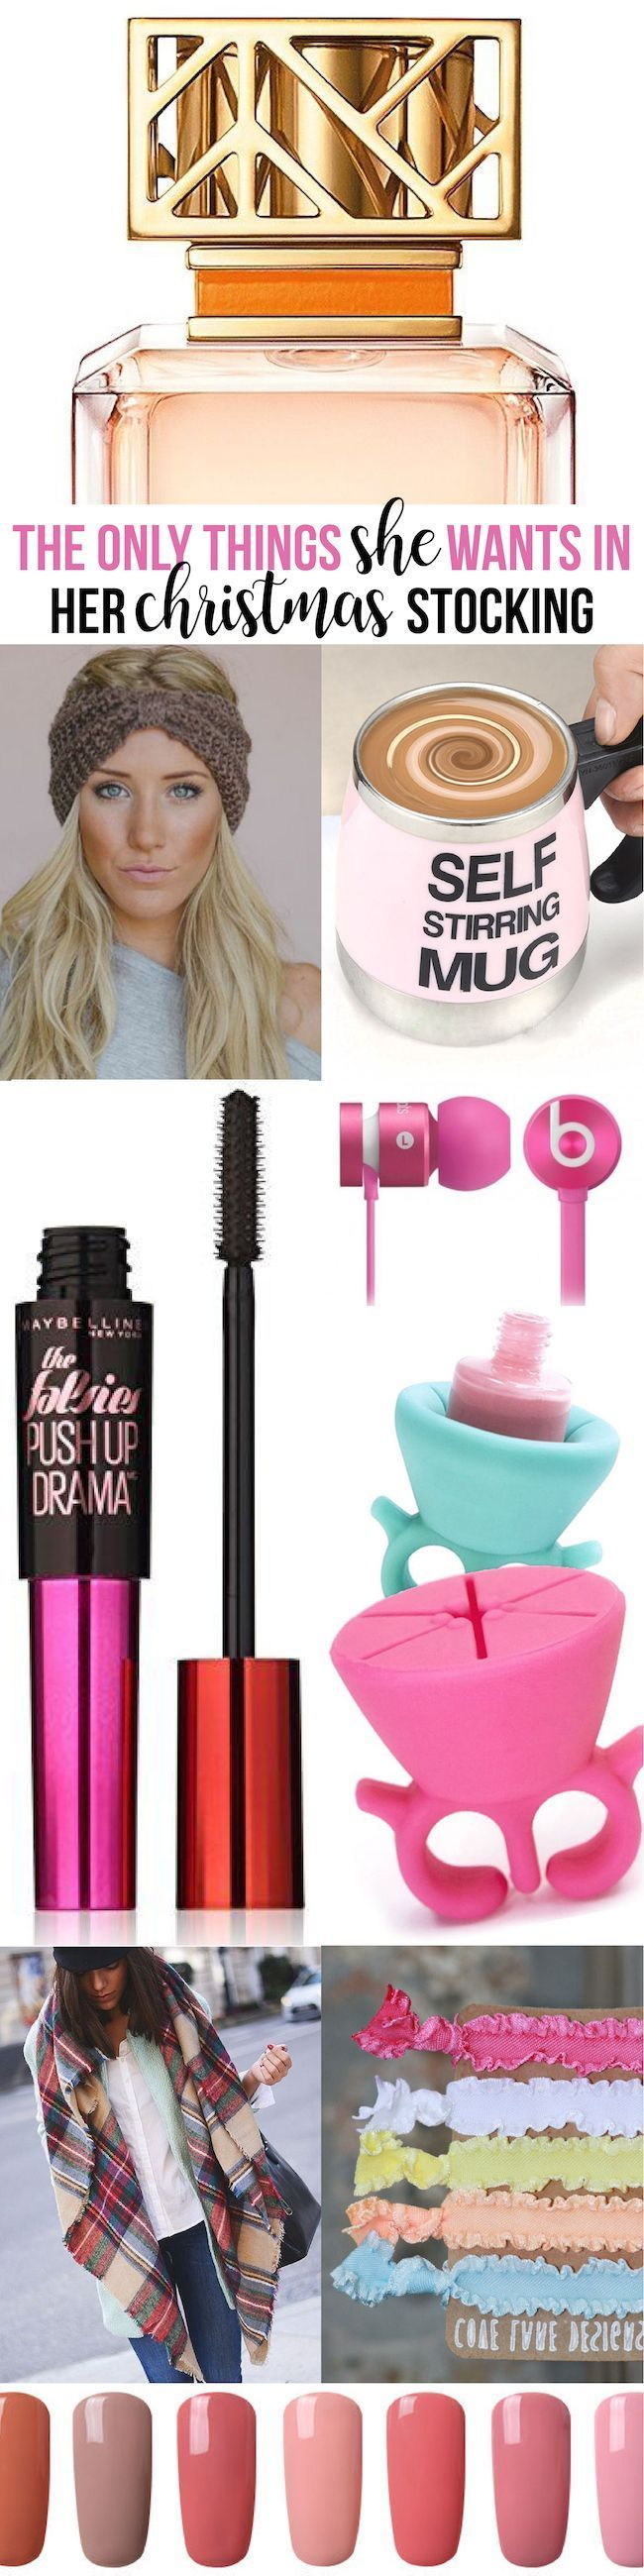 best gift ideers images on pinterest gift ideas mother day